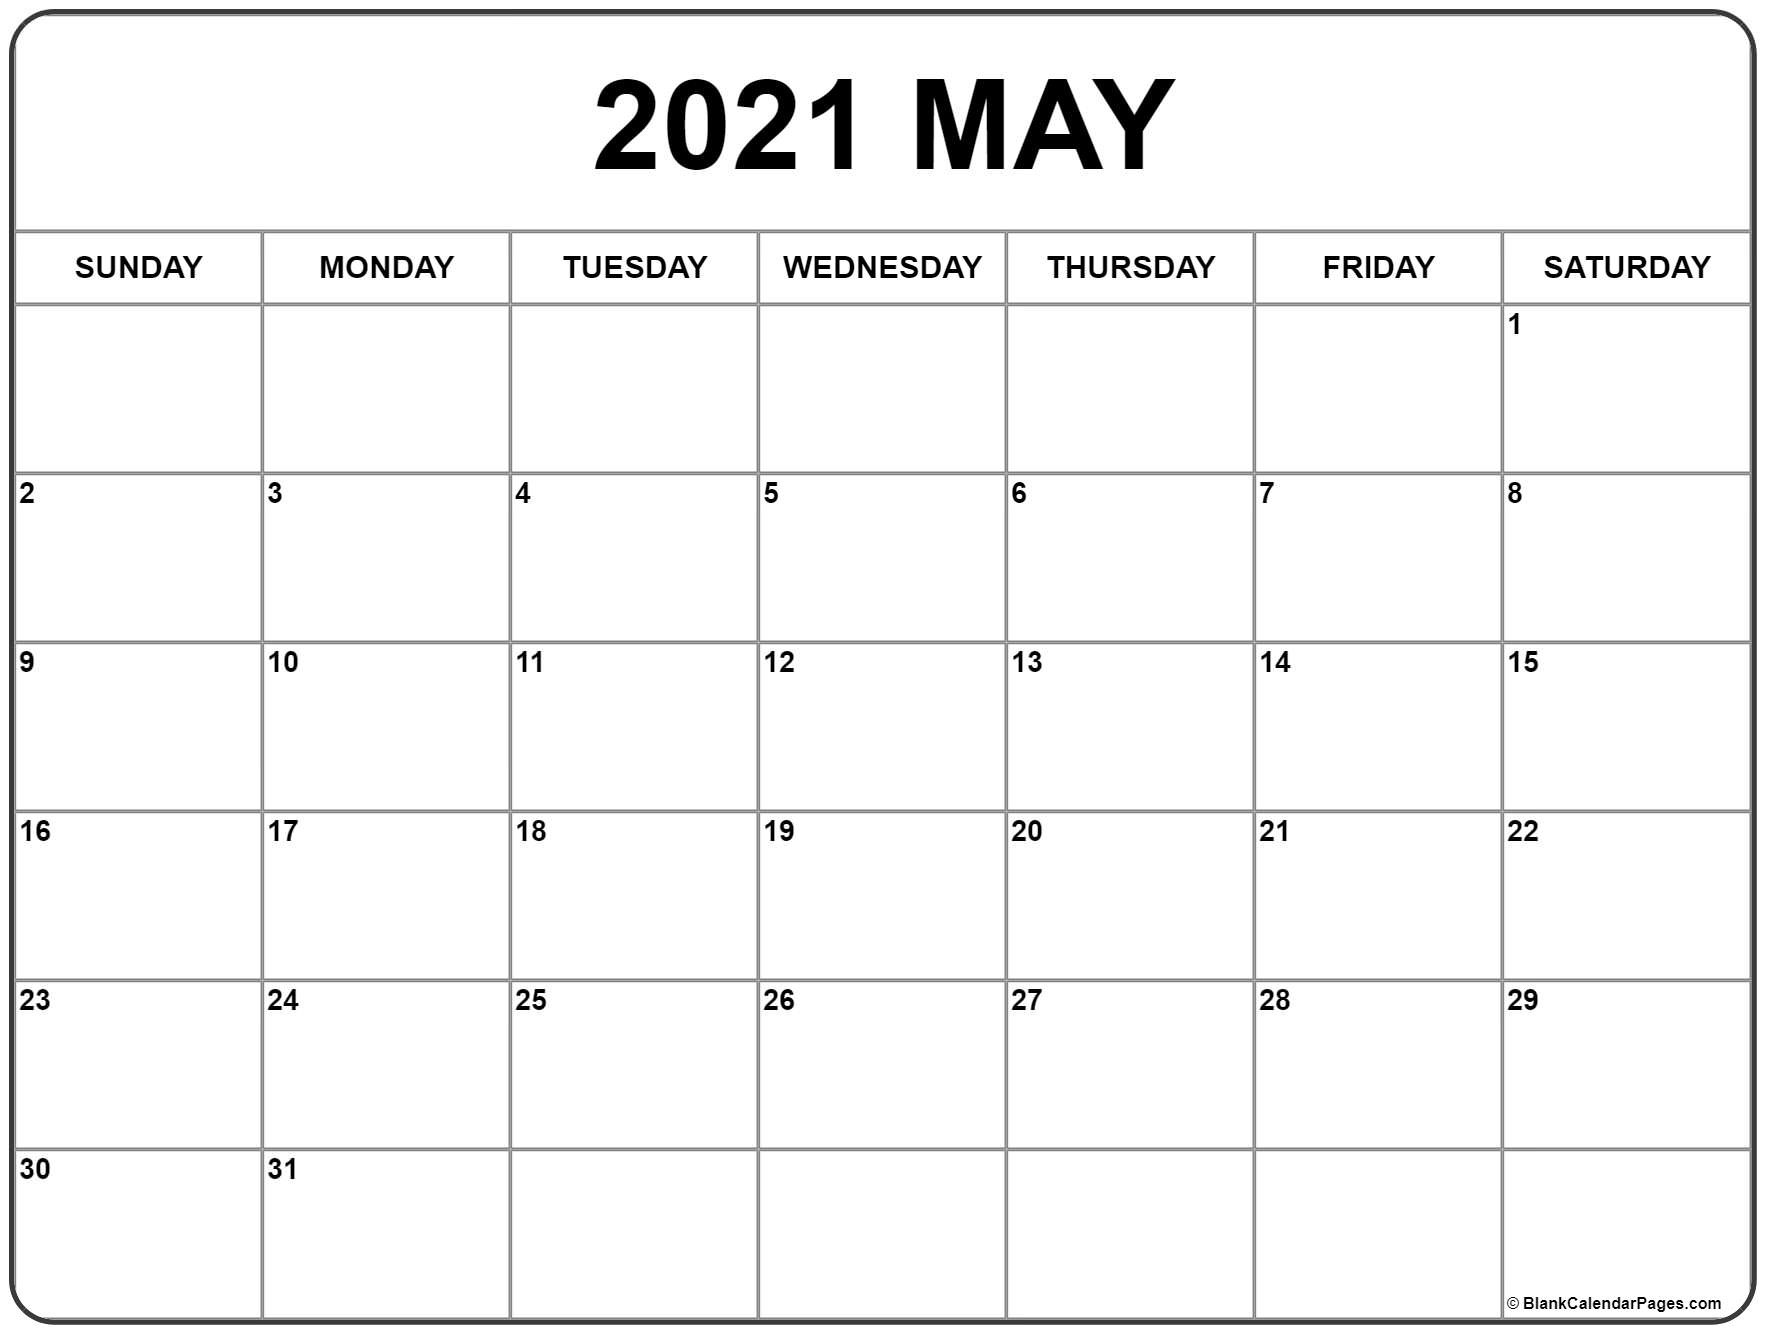 May 2021 Calendar | Free Printable Monthly Calendars-Free Printable Monthly Calendar With Holidays 2021